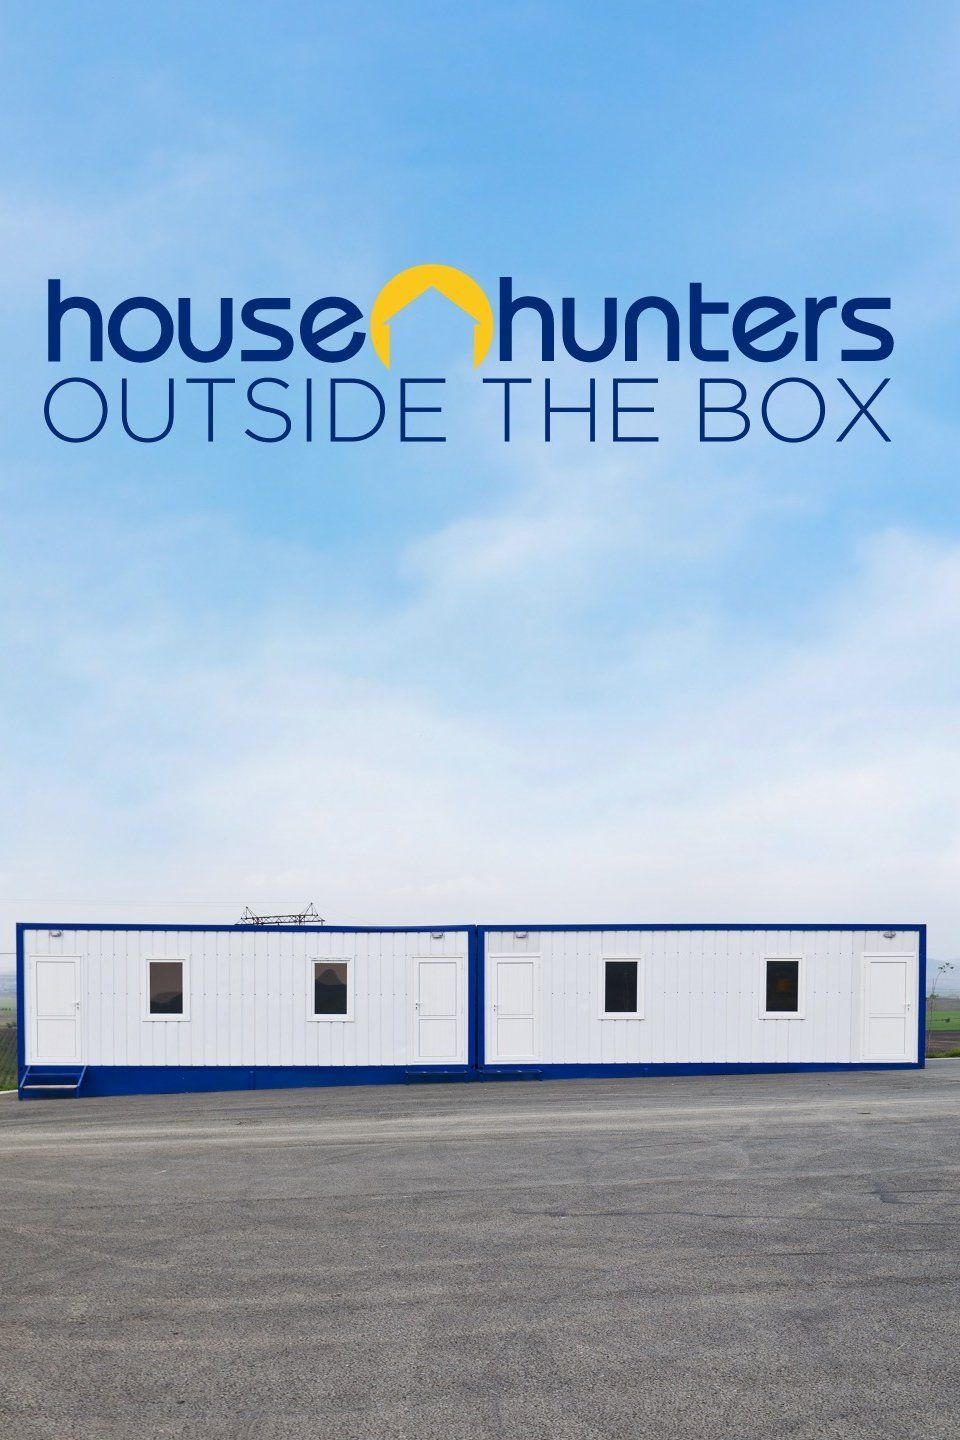 House hunters outside the box tvmaze for Hgtv schedule house hunters